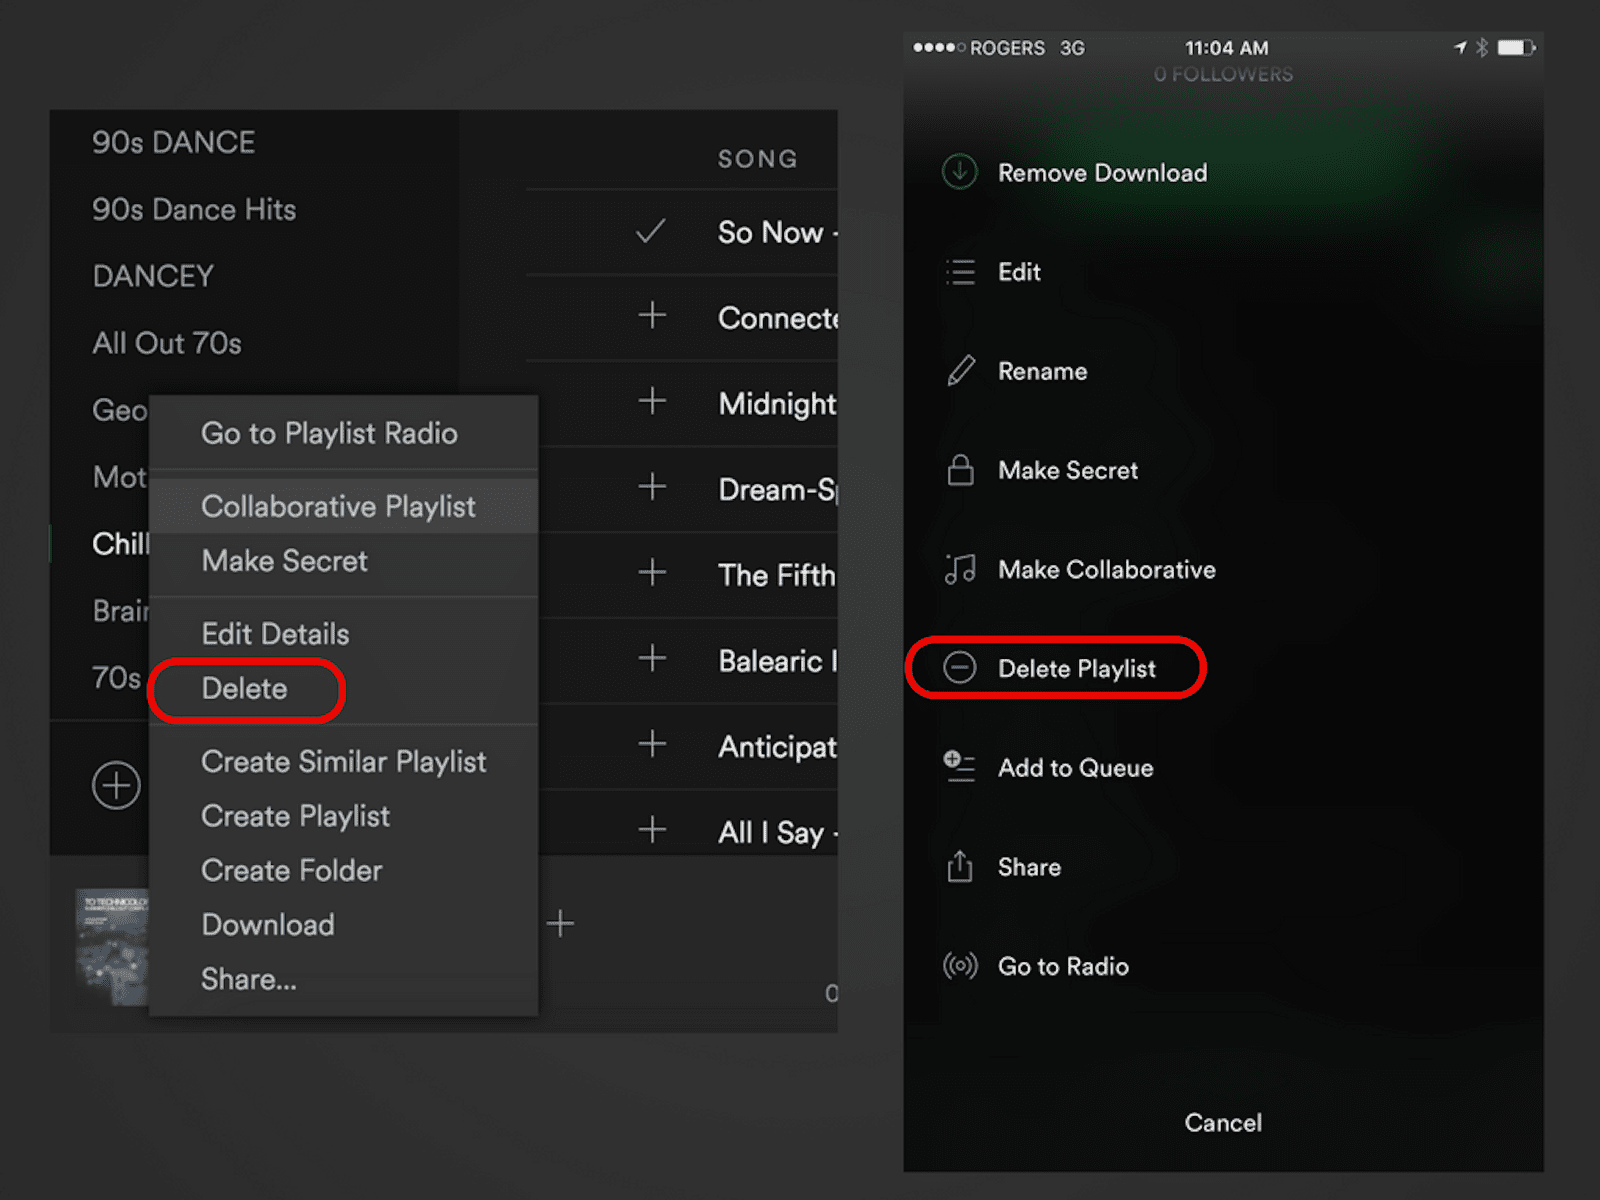 How to Make a Playlist on Spotify